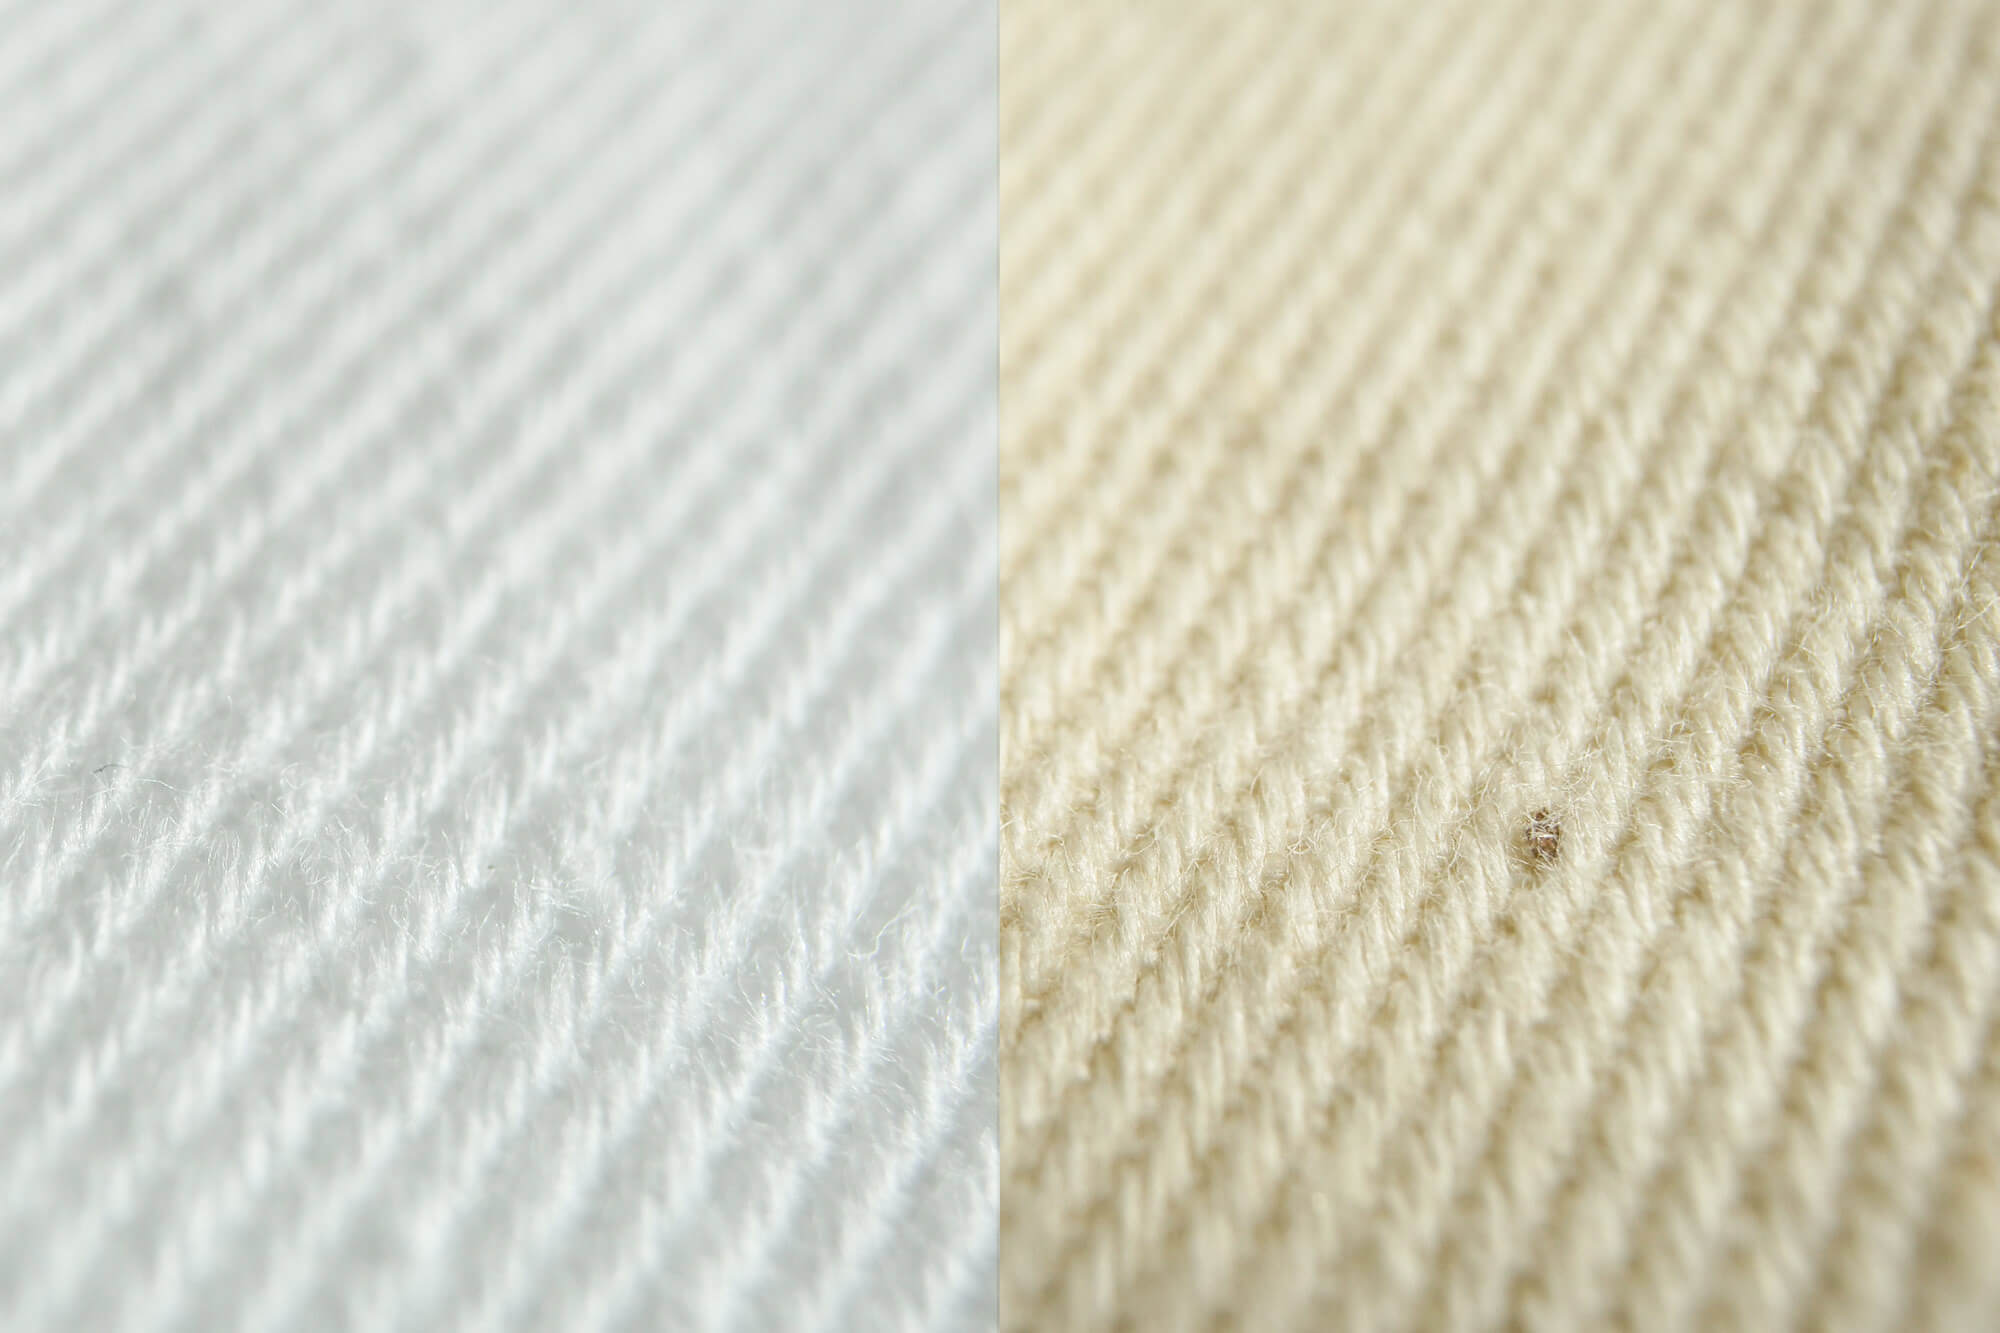 Bleached and unbleached fabric Comparaison